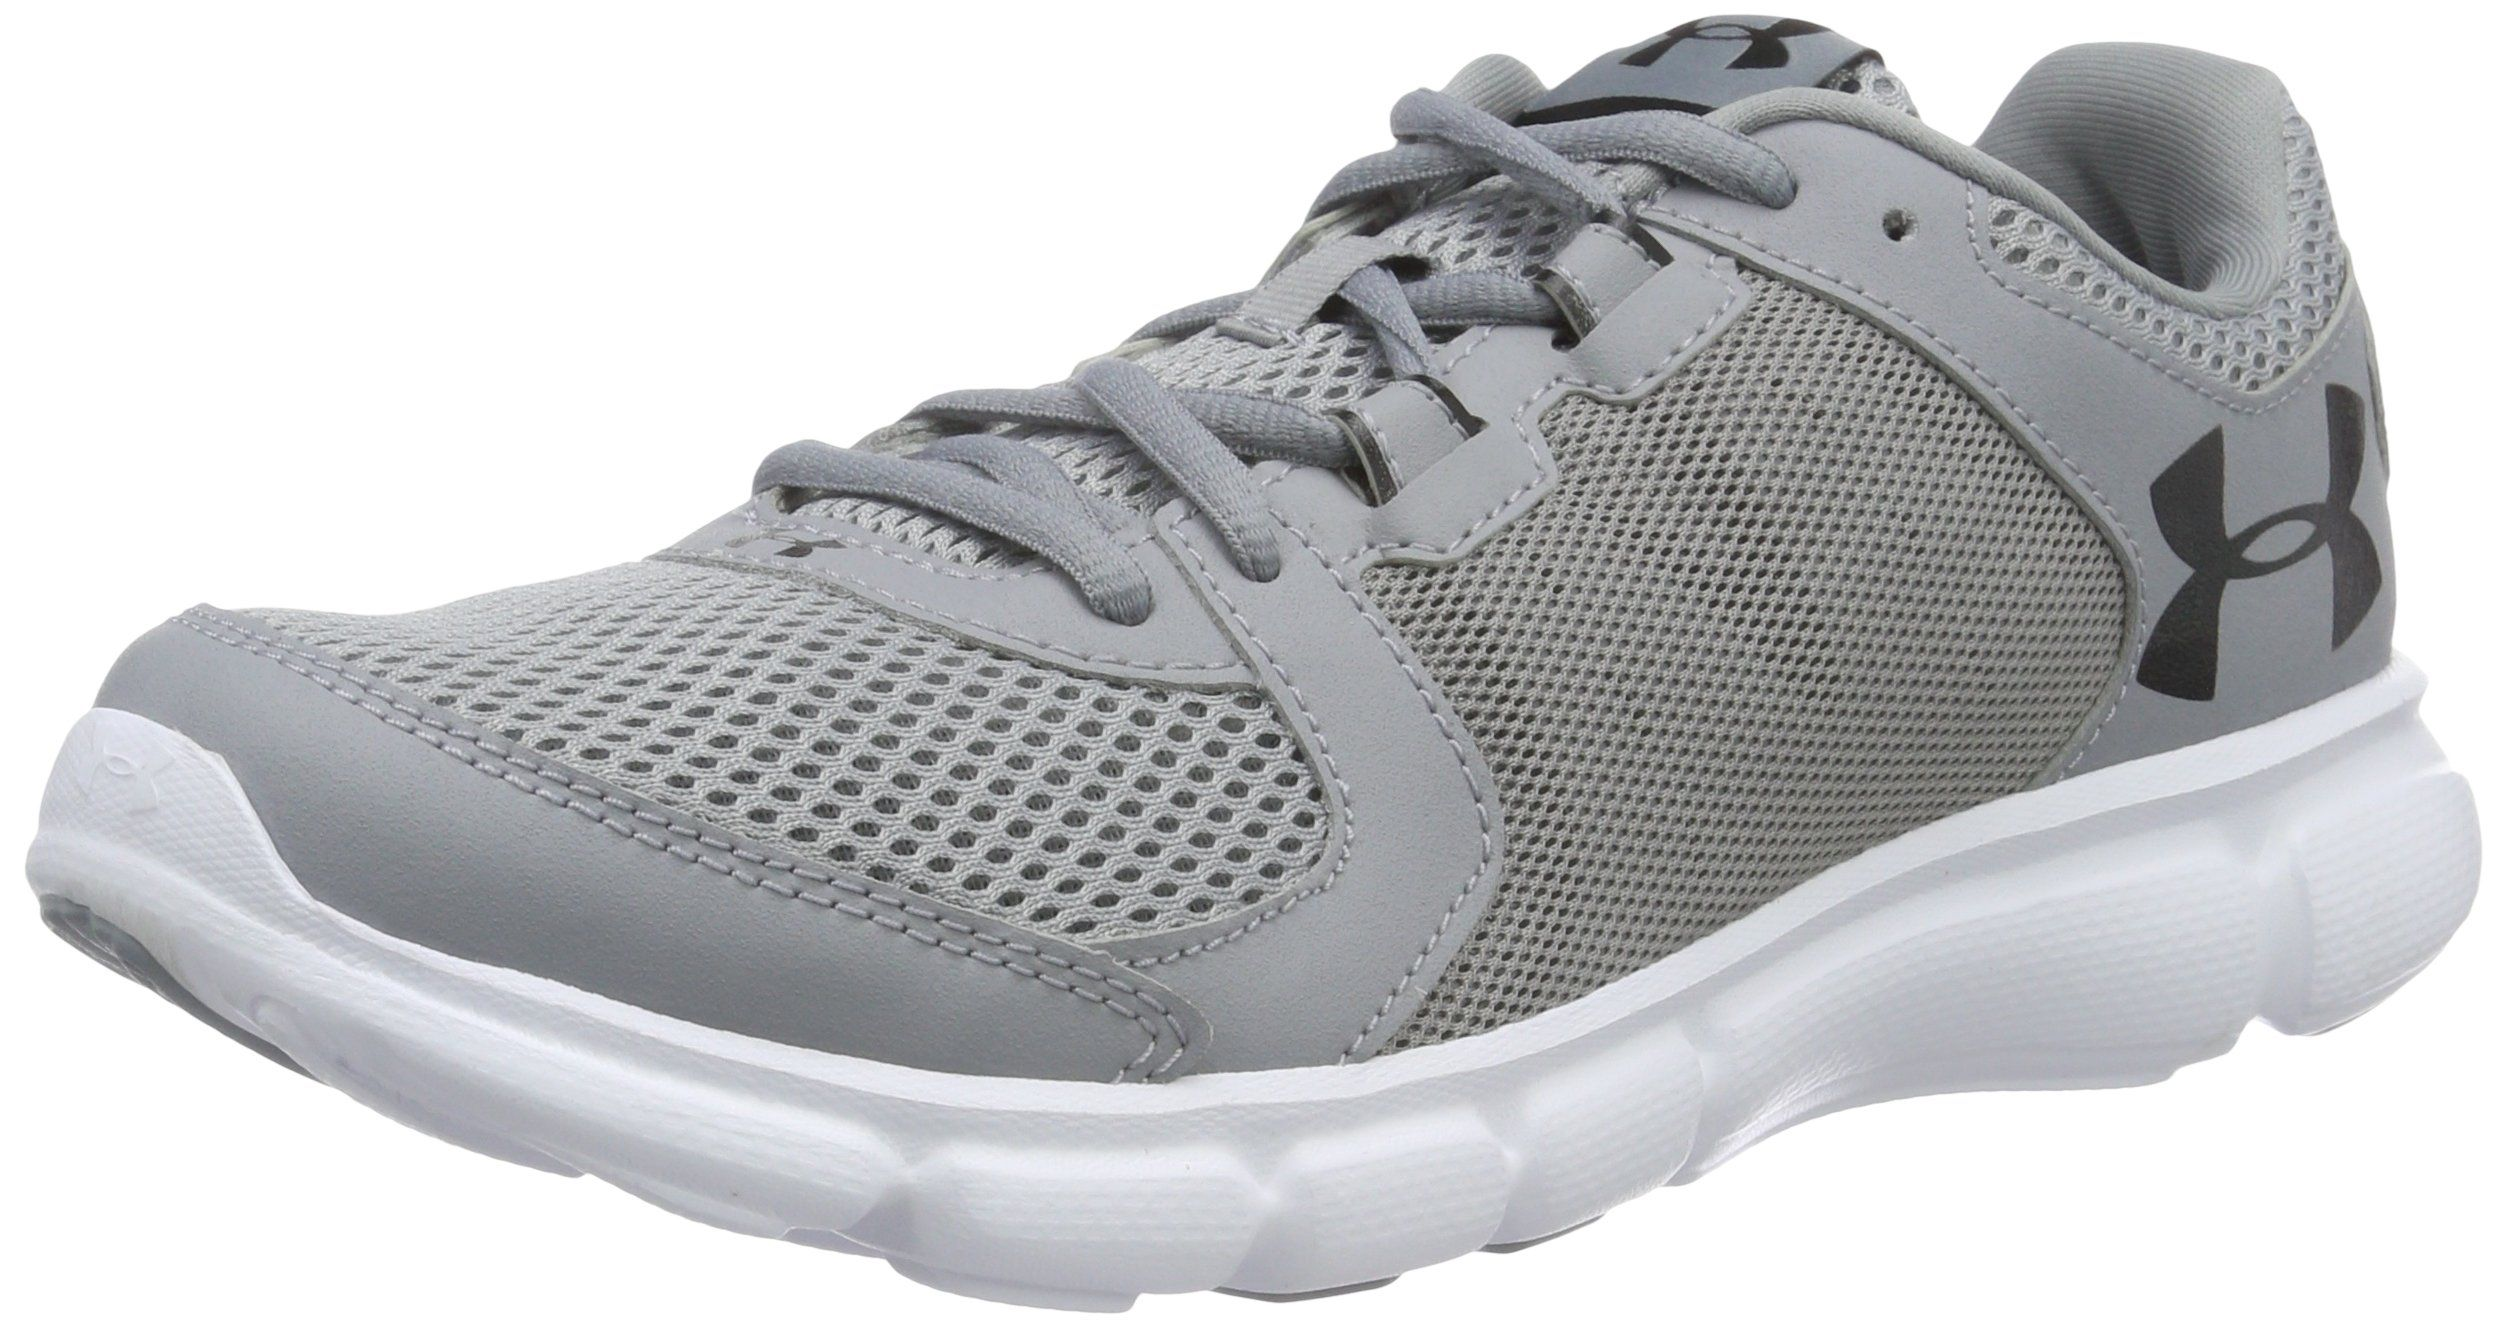 Under Armour Men's Thrill 2 Running Shoes, Steel/White, 10 D(M) US.  Breathable mesh upper provides complete ventilation. Midfoot straps add  structure ...